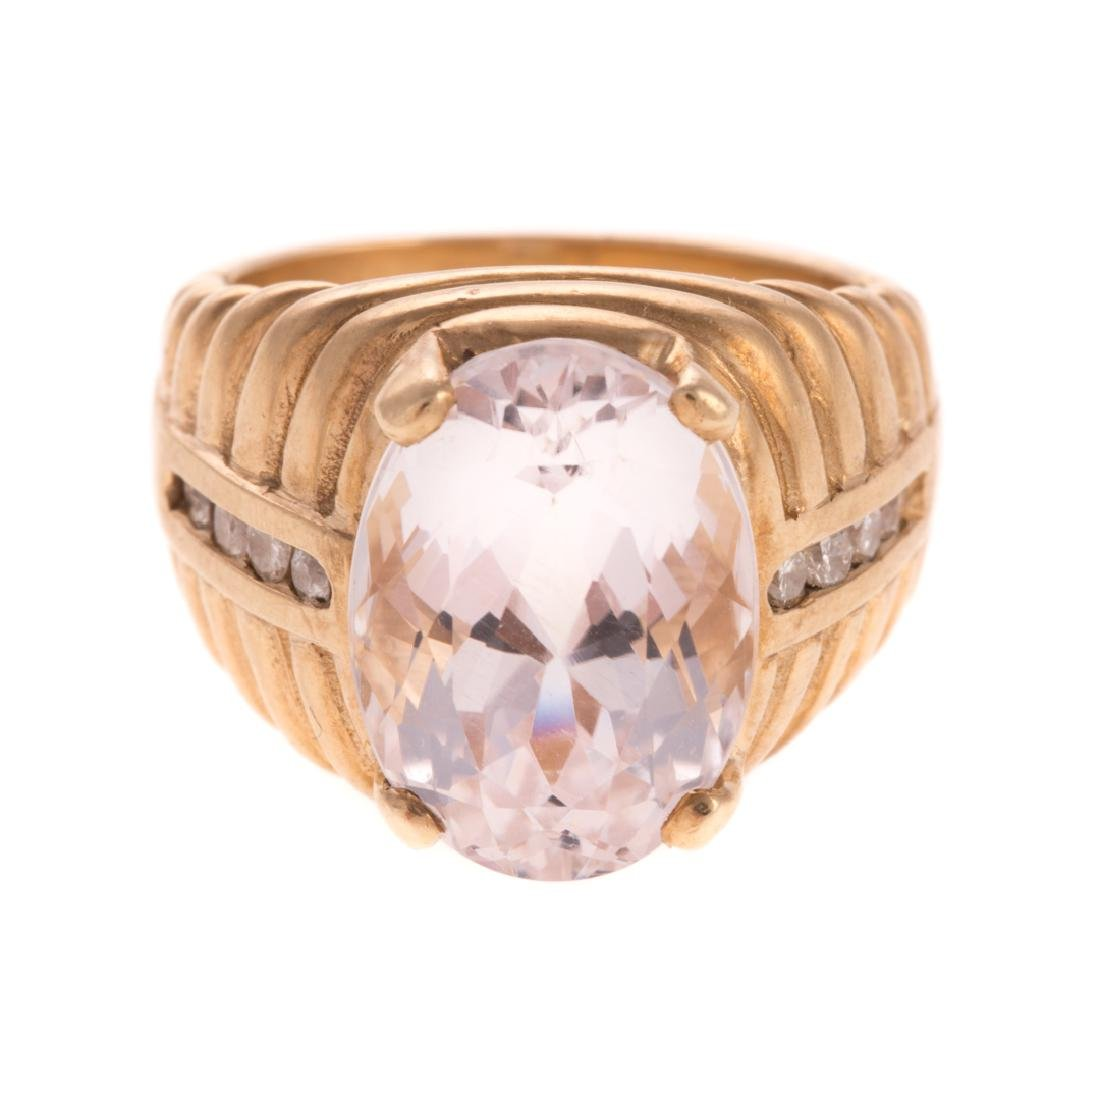 A Lady's Kunzite and Diamond Ring in 14K